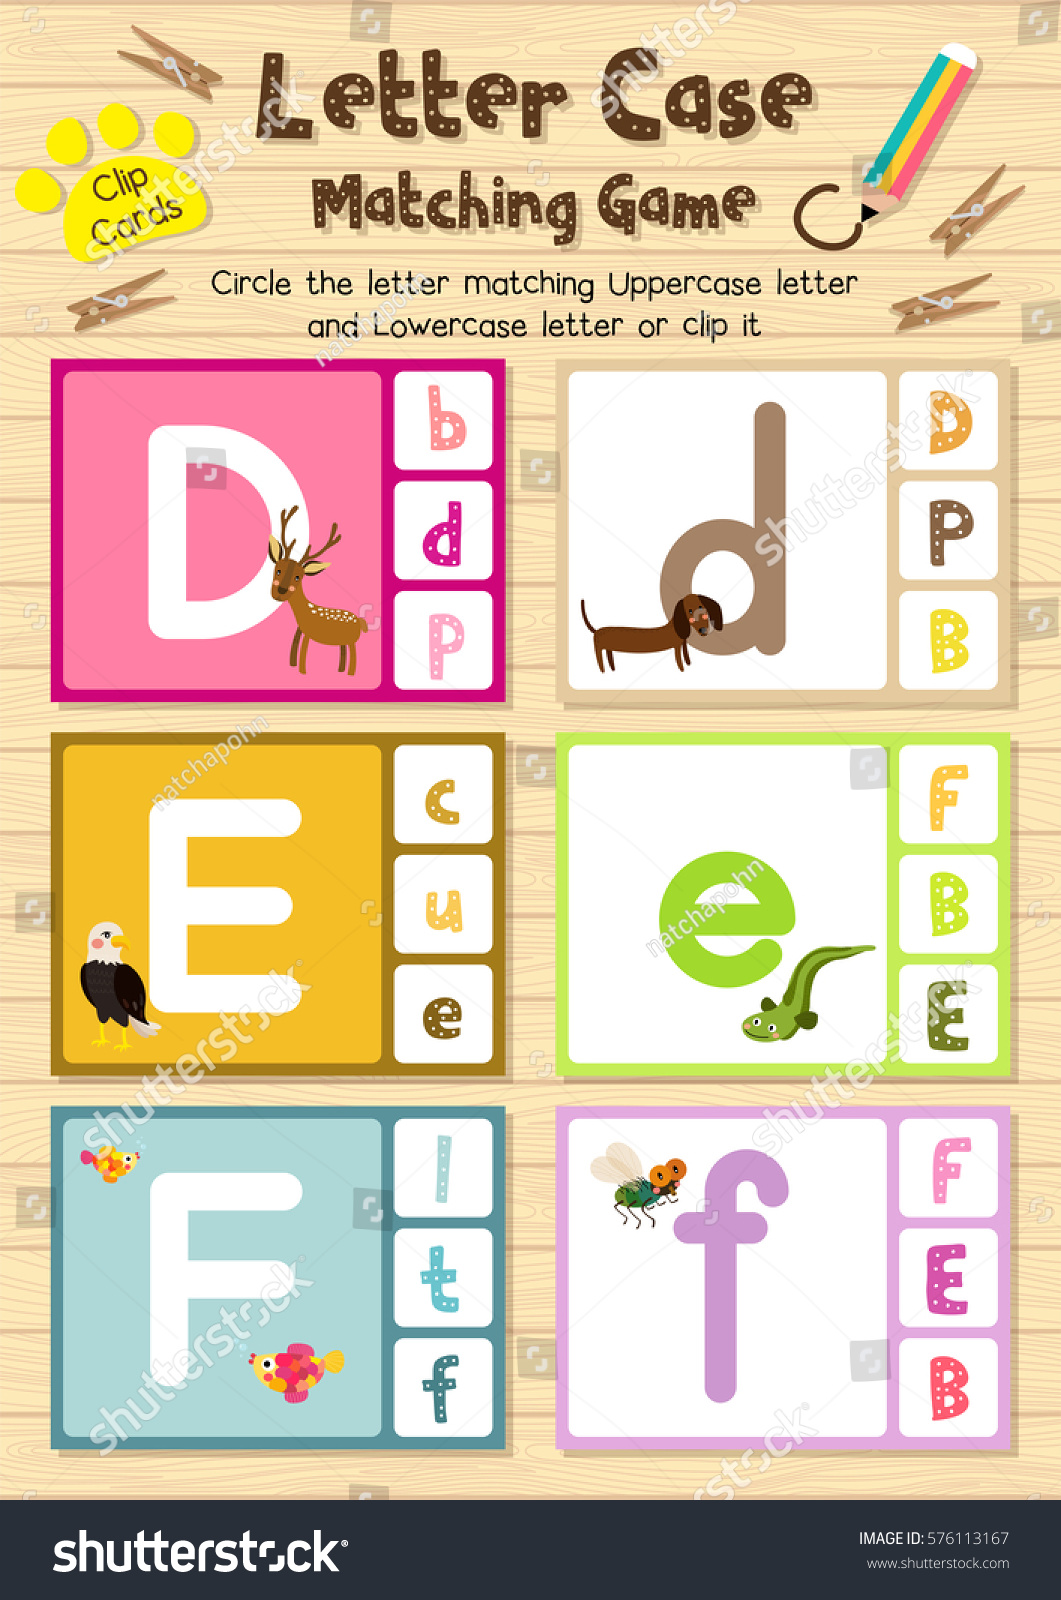 Clip Cards Matching Game Letter Case Stock Vector